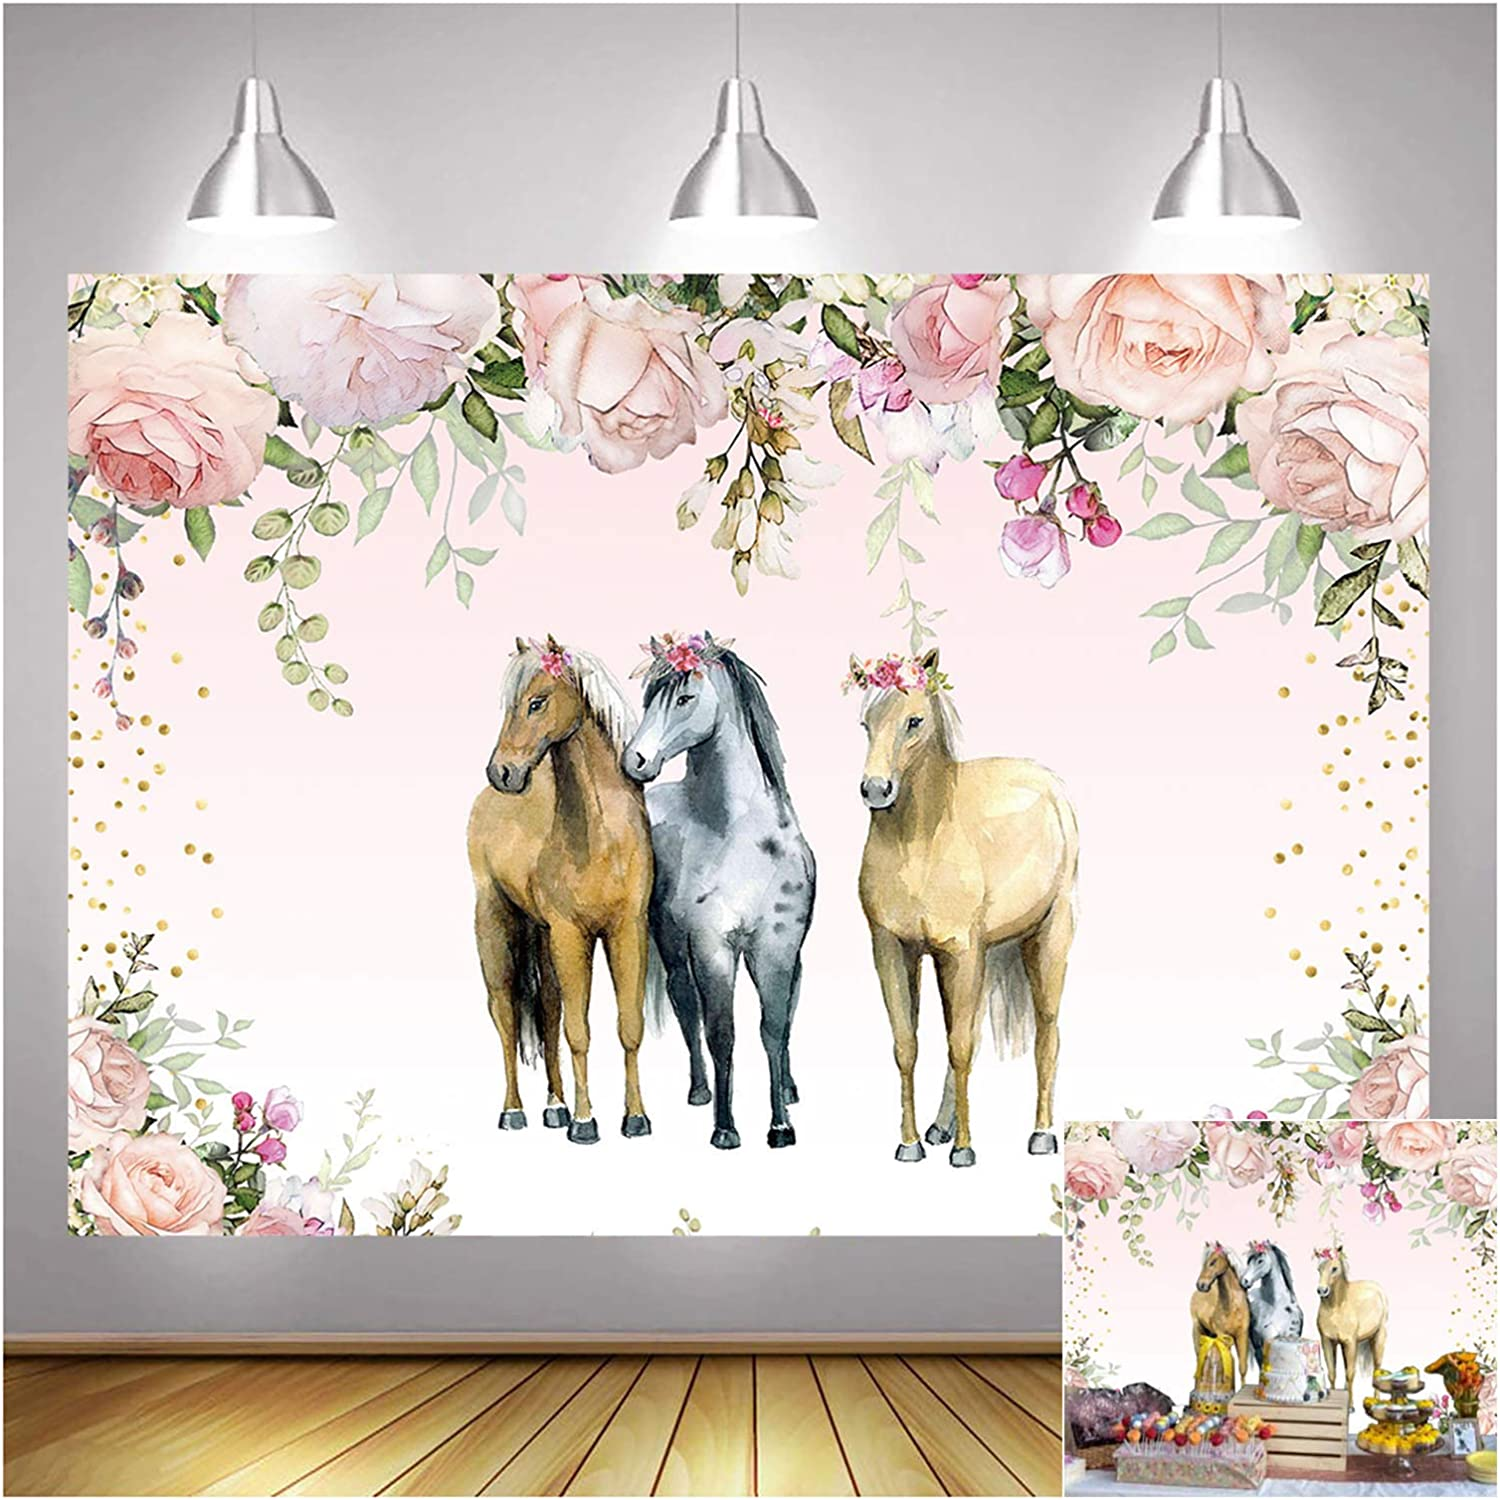 Pink Flower Countryside West Cowboy Cowgirl Horse Theme Photography Backdrop 5x3ft Children Boy or Princess Girl Birthday Photo Background Baby Shower Party Supplies Banner Cake Table Decor Vinyl